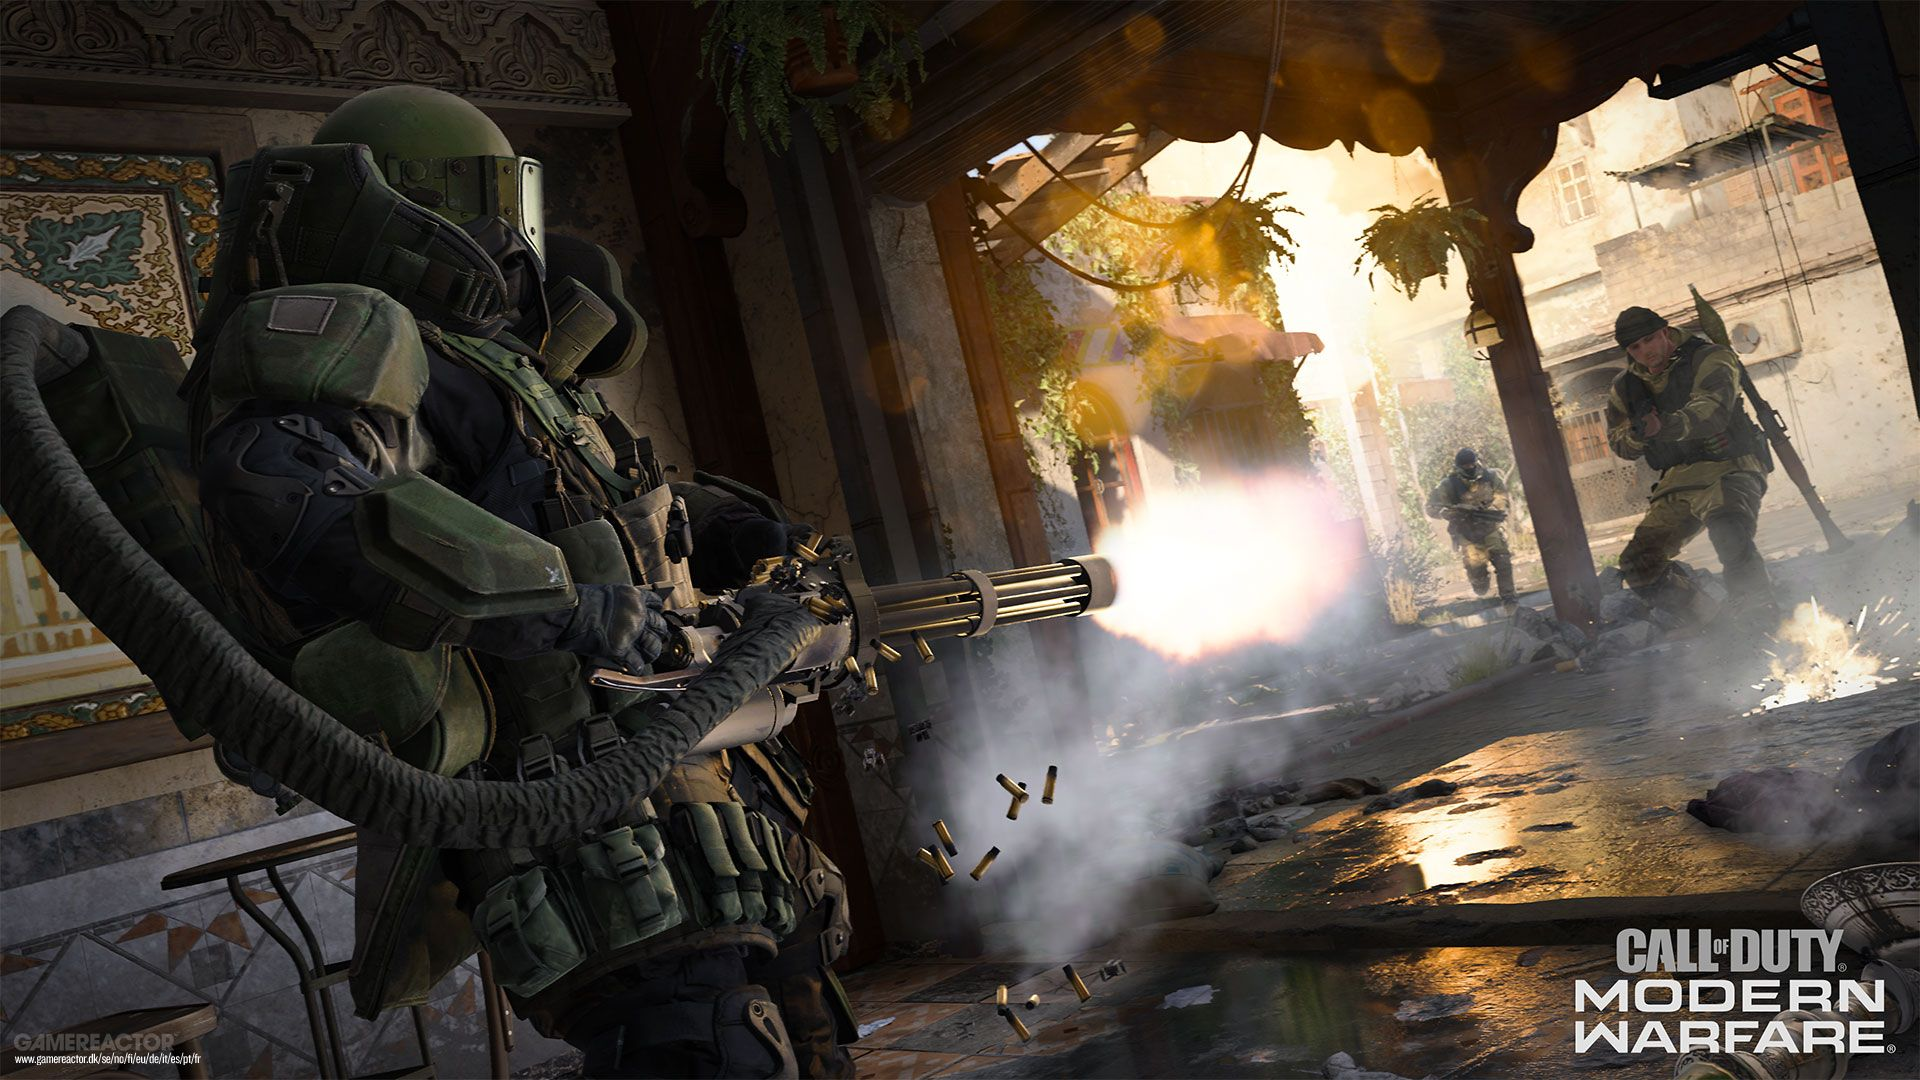 Pictures Of Call Of Duty Modern Warfare Shows 24 Minutes Of